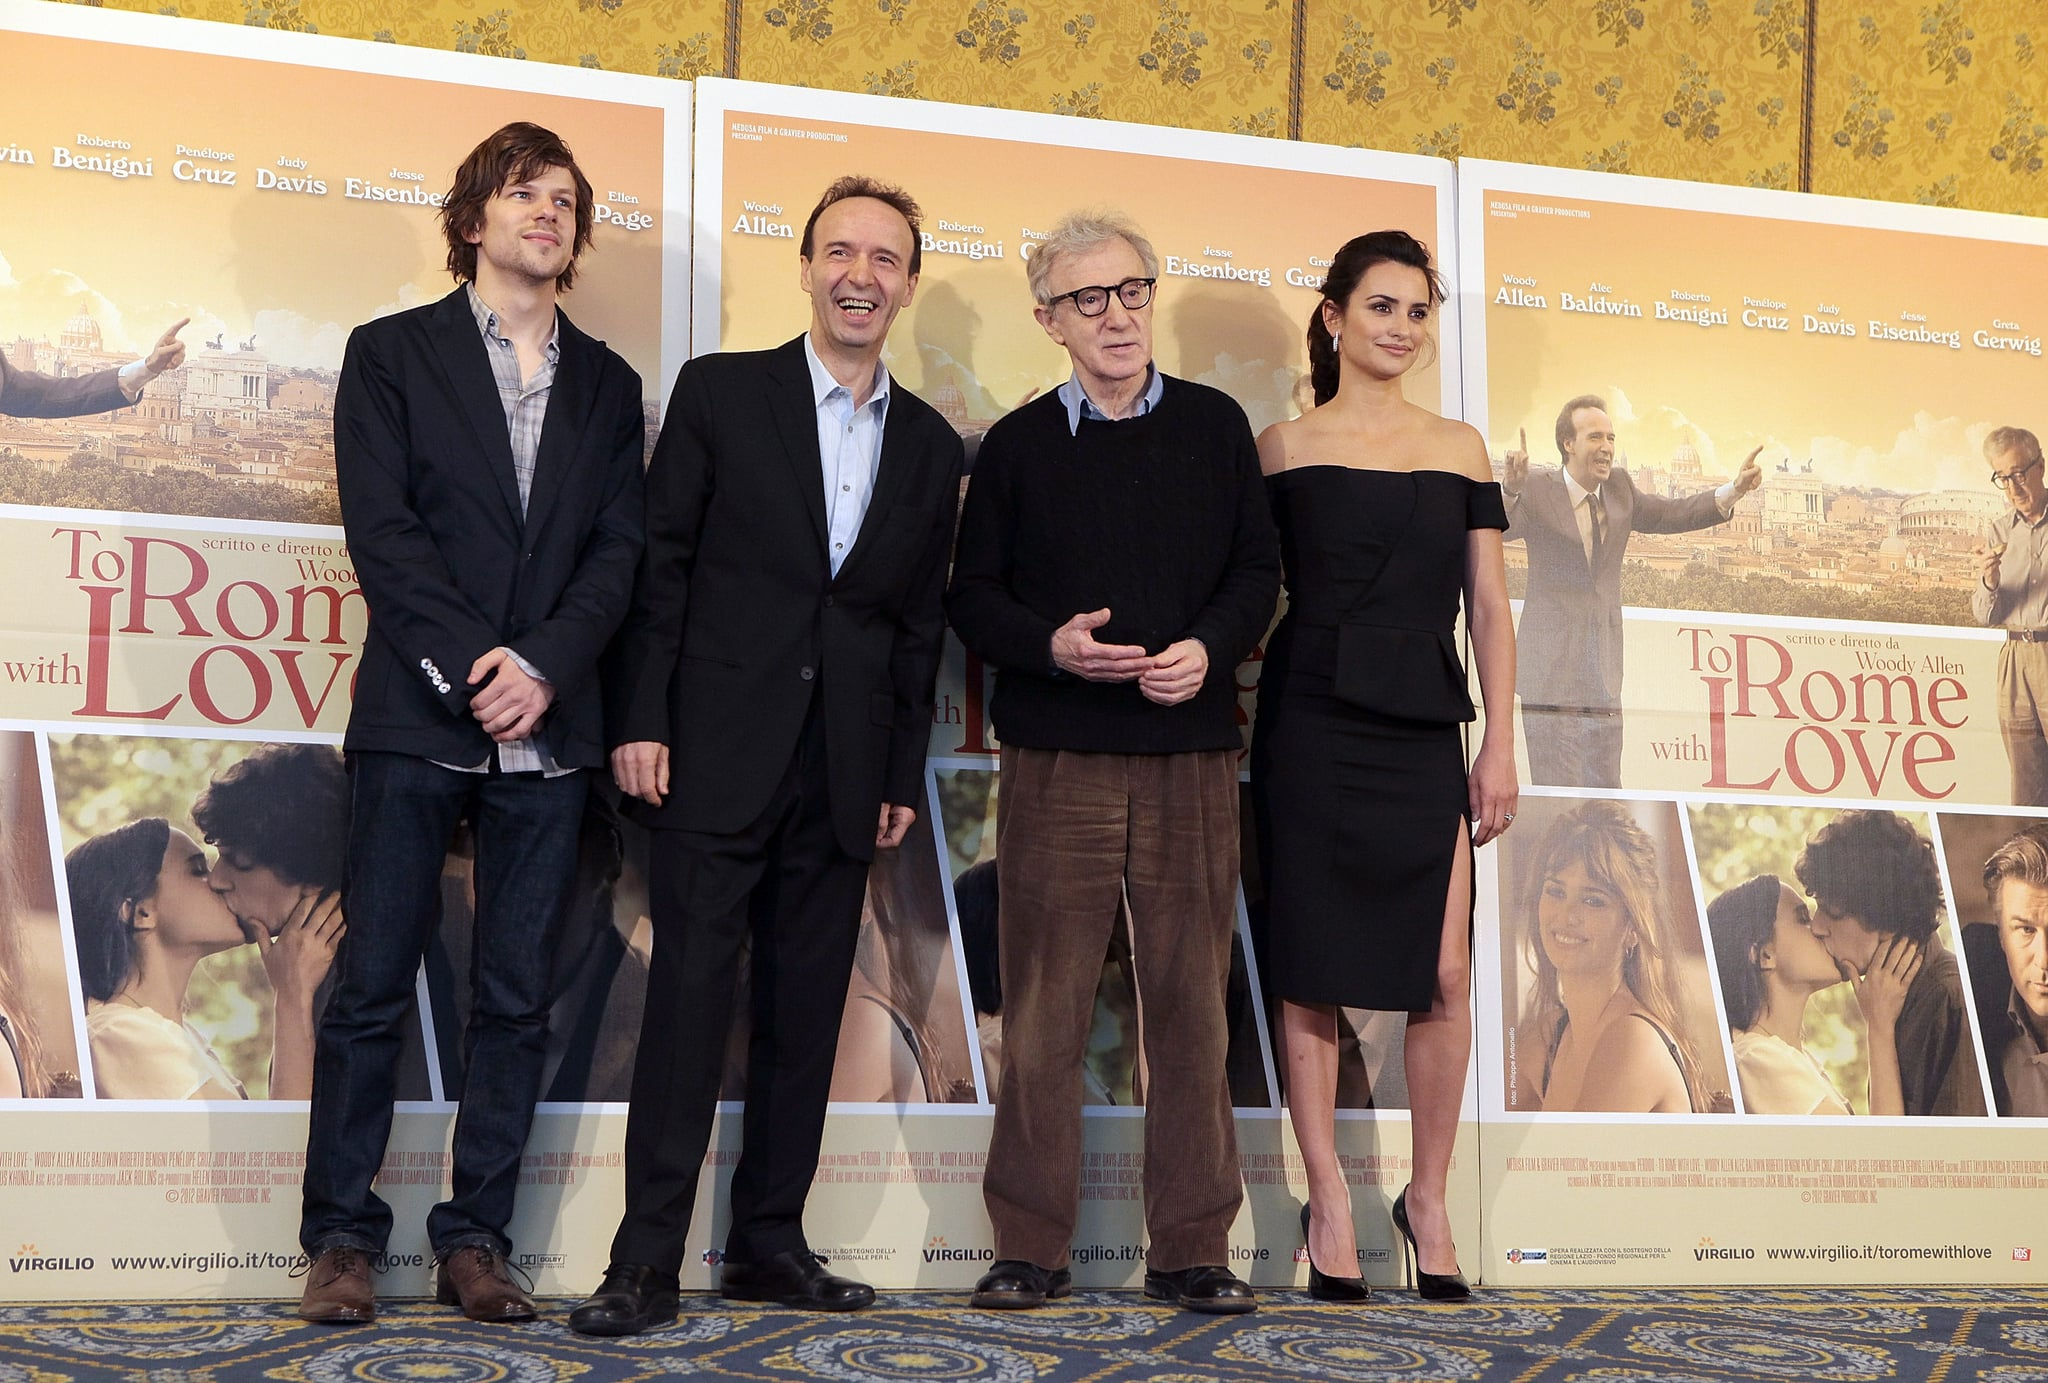 Penelope Cruz, Jesse Eisenberg, Wood Allen and Roberto Begnini looked great together at a press conference for To Rome With Love.